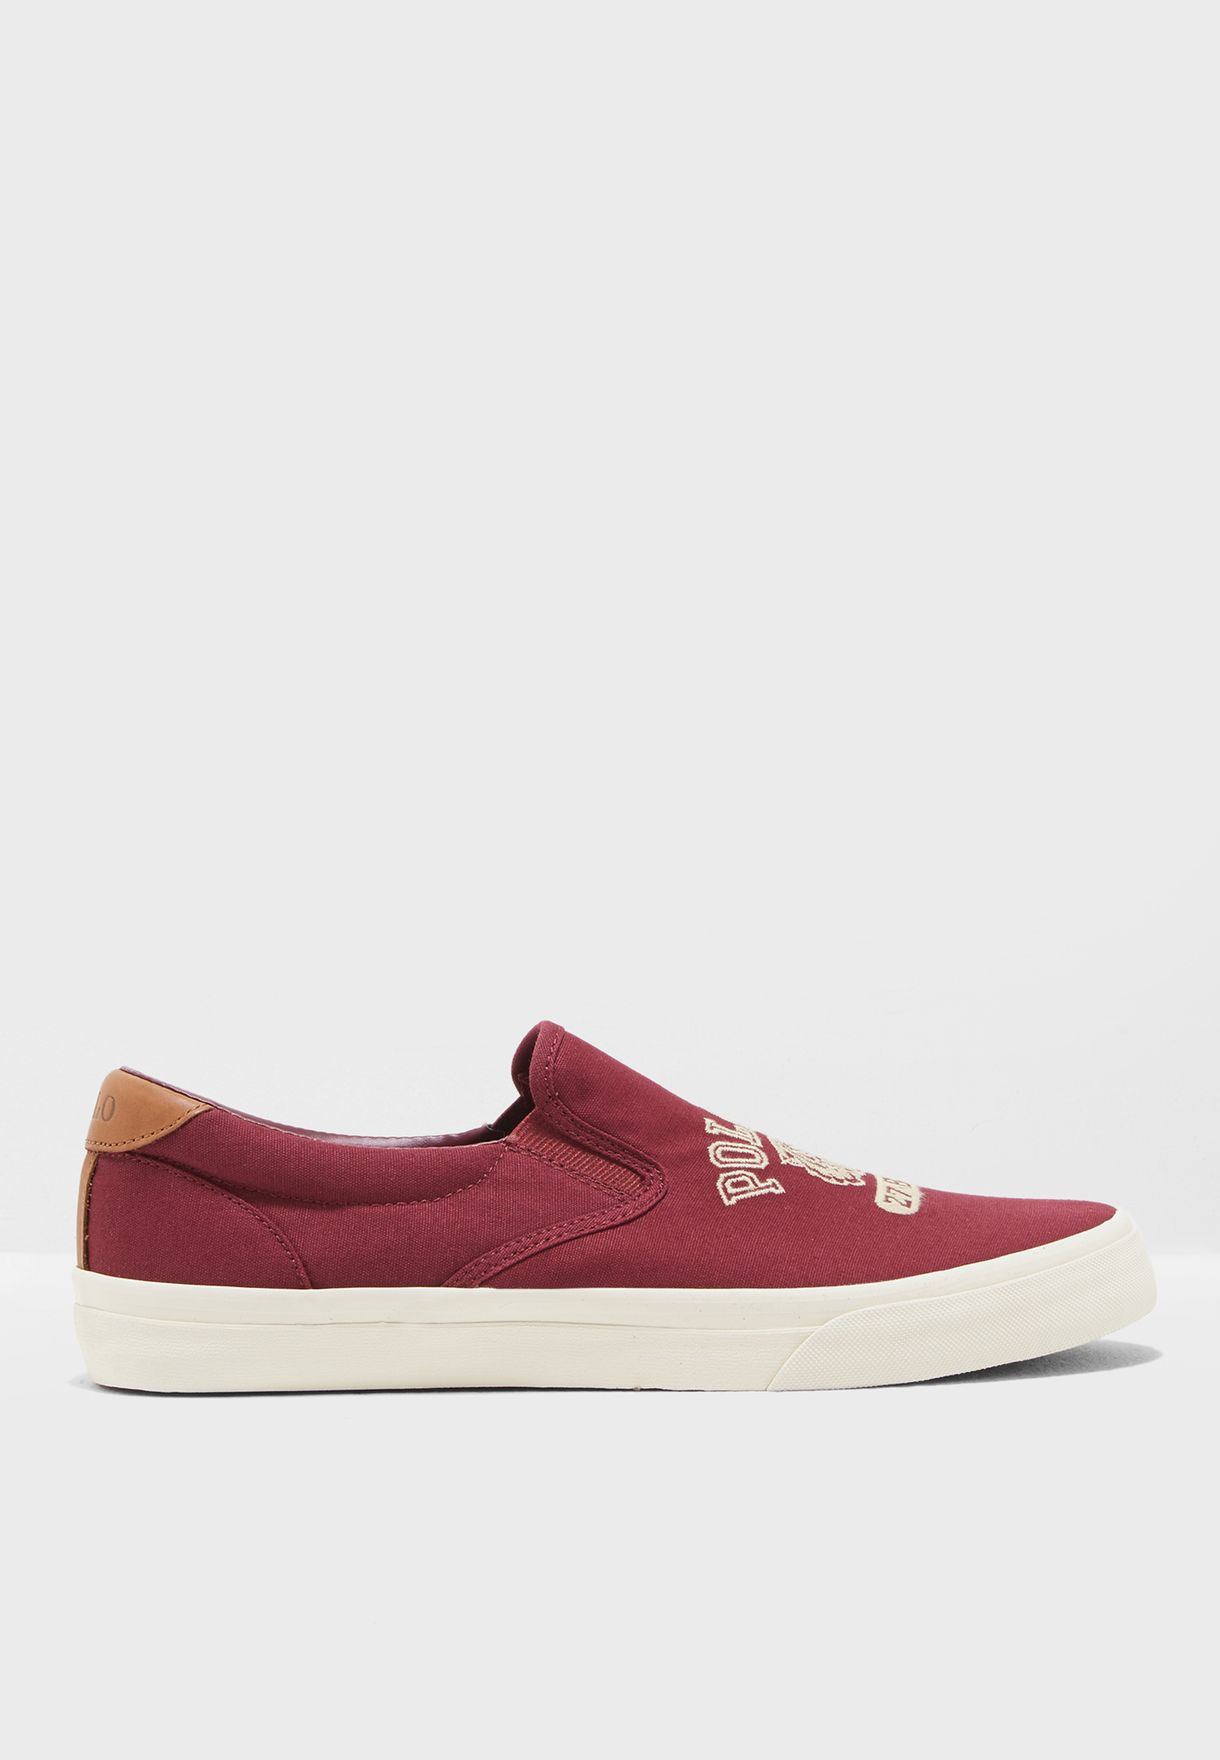 Thompson Slip Ons